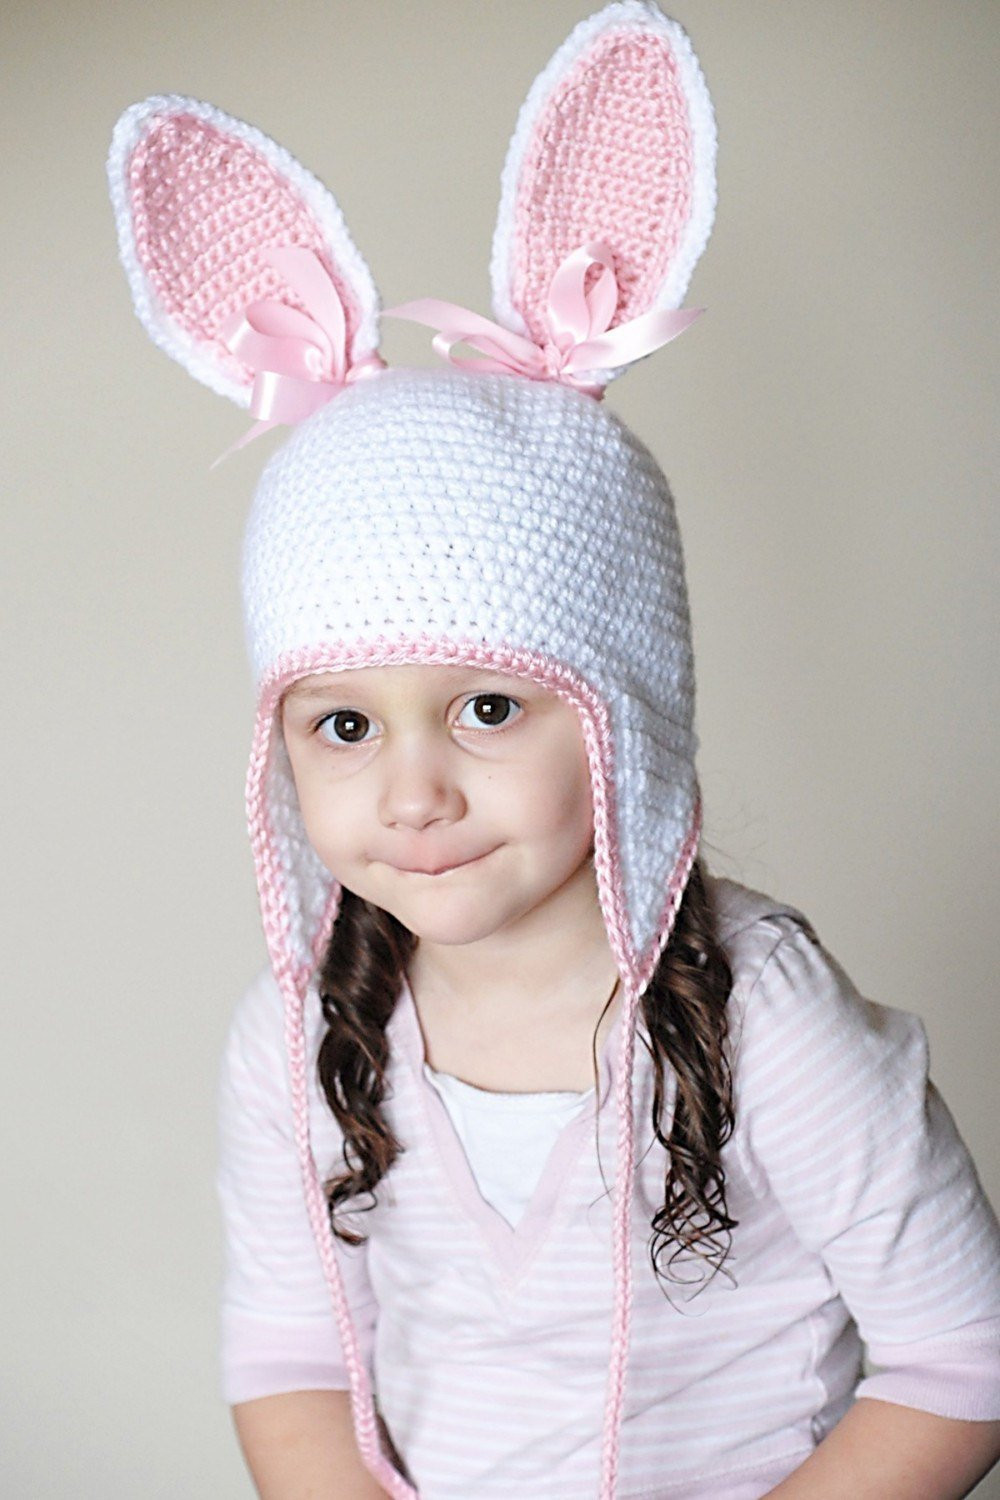 Lovely Bunny Earflap Hat Crochet Pattern Instant Download Crochet Bunny Hat Of Gorgeous 50 Photos Crochet Bunny Hat